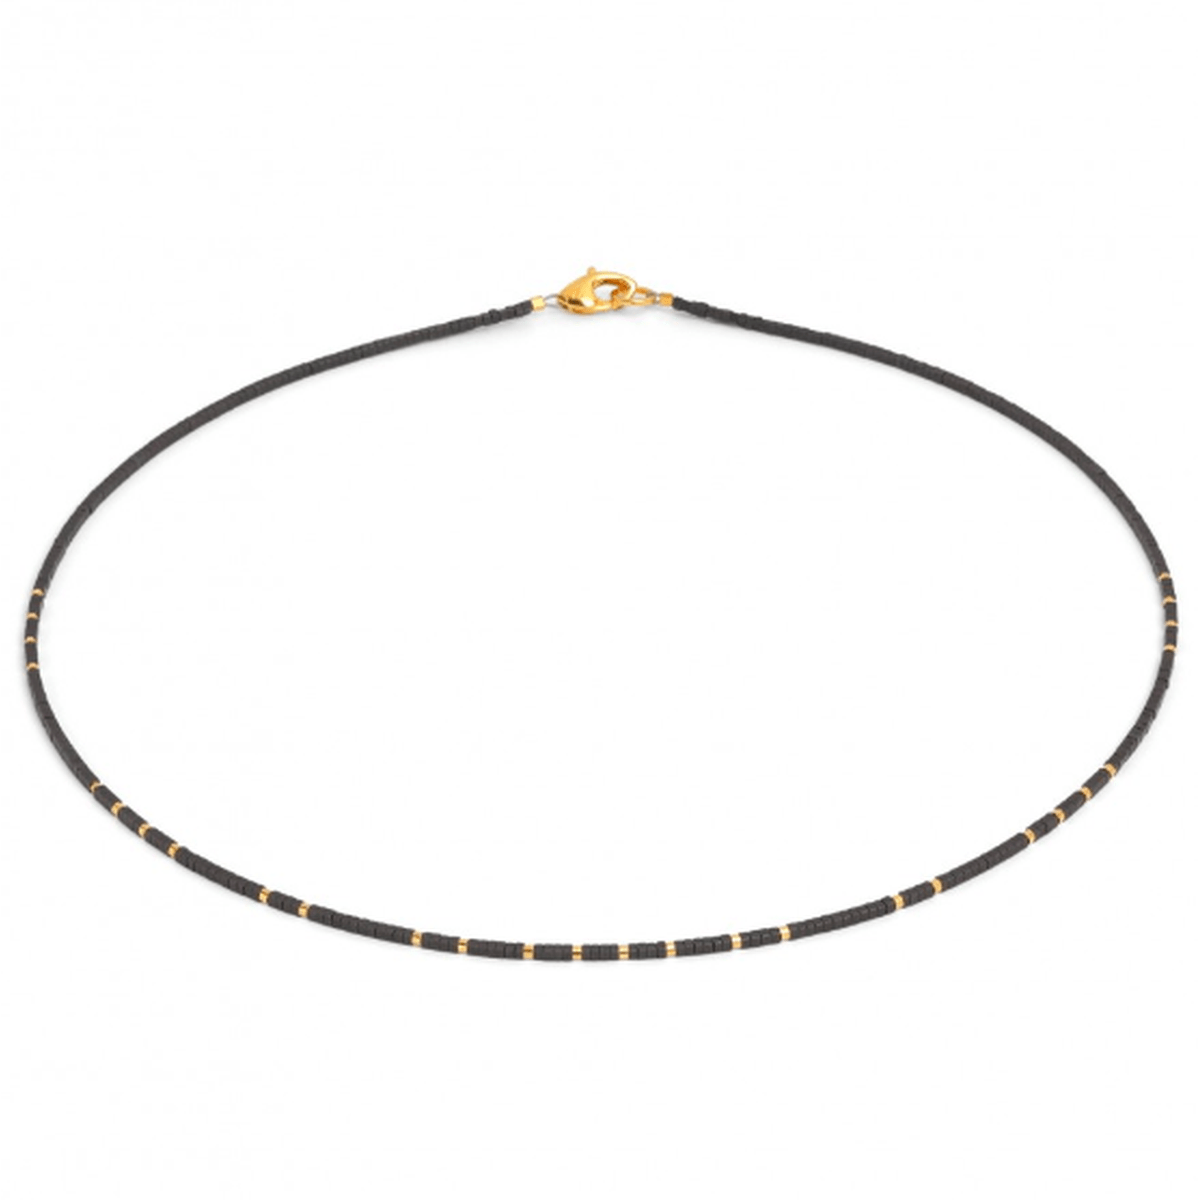 Würfel Hematite Necklace - 84497276